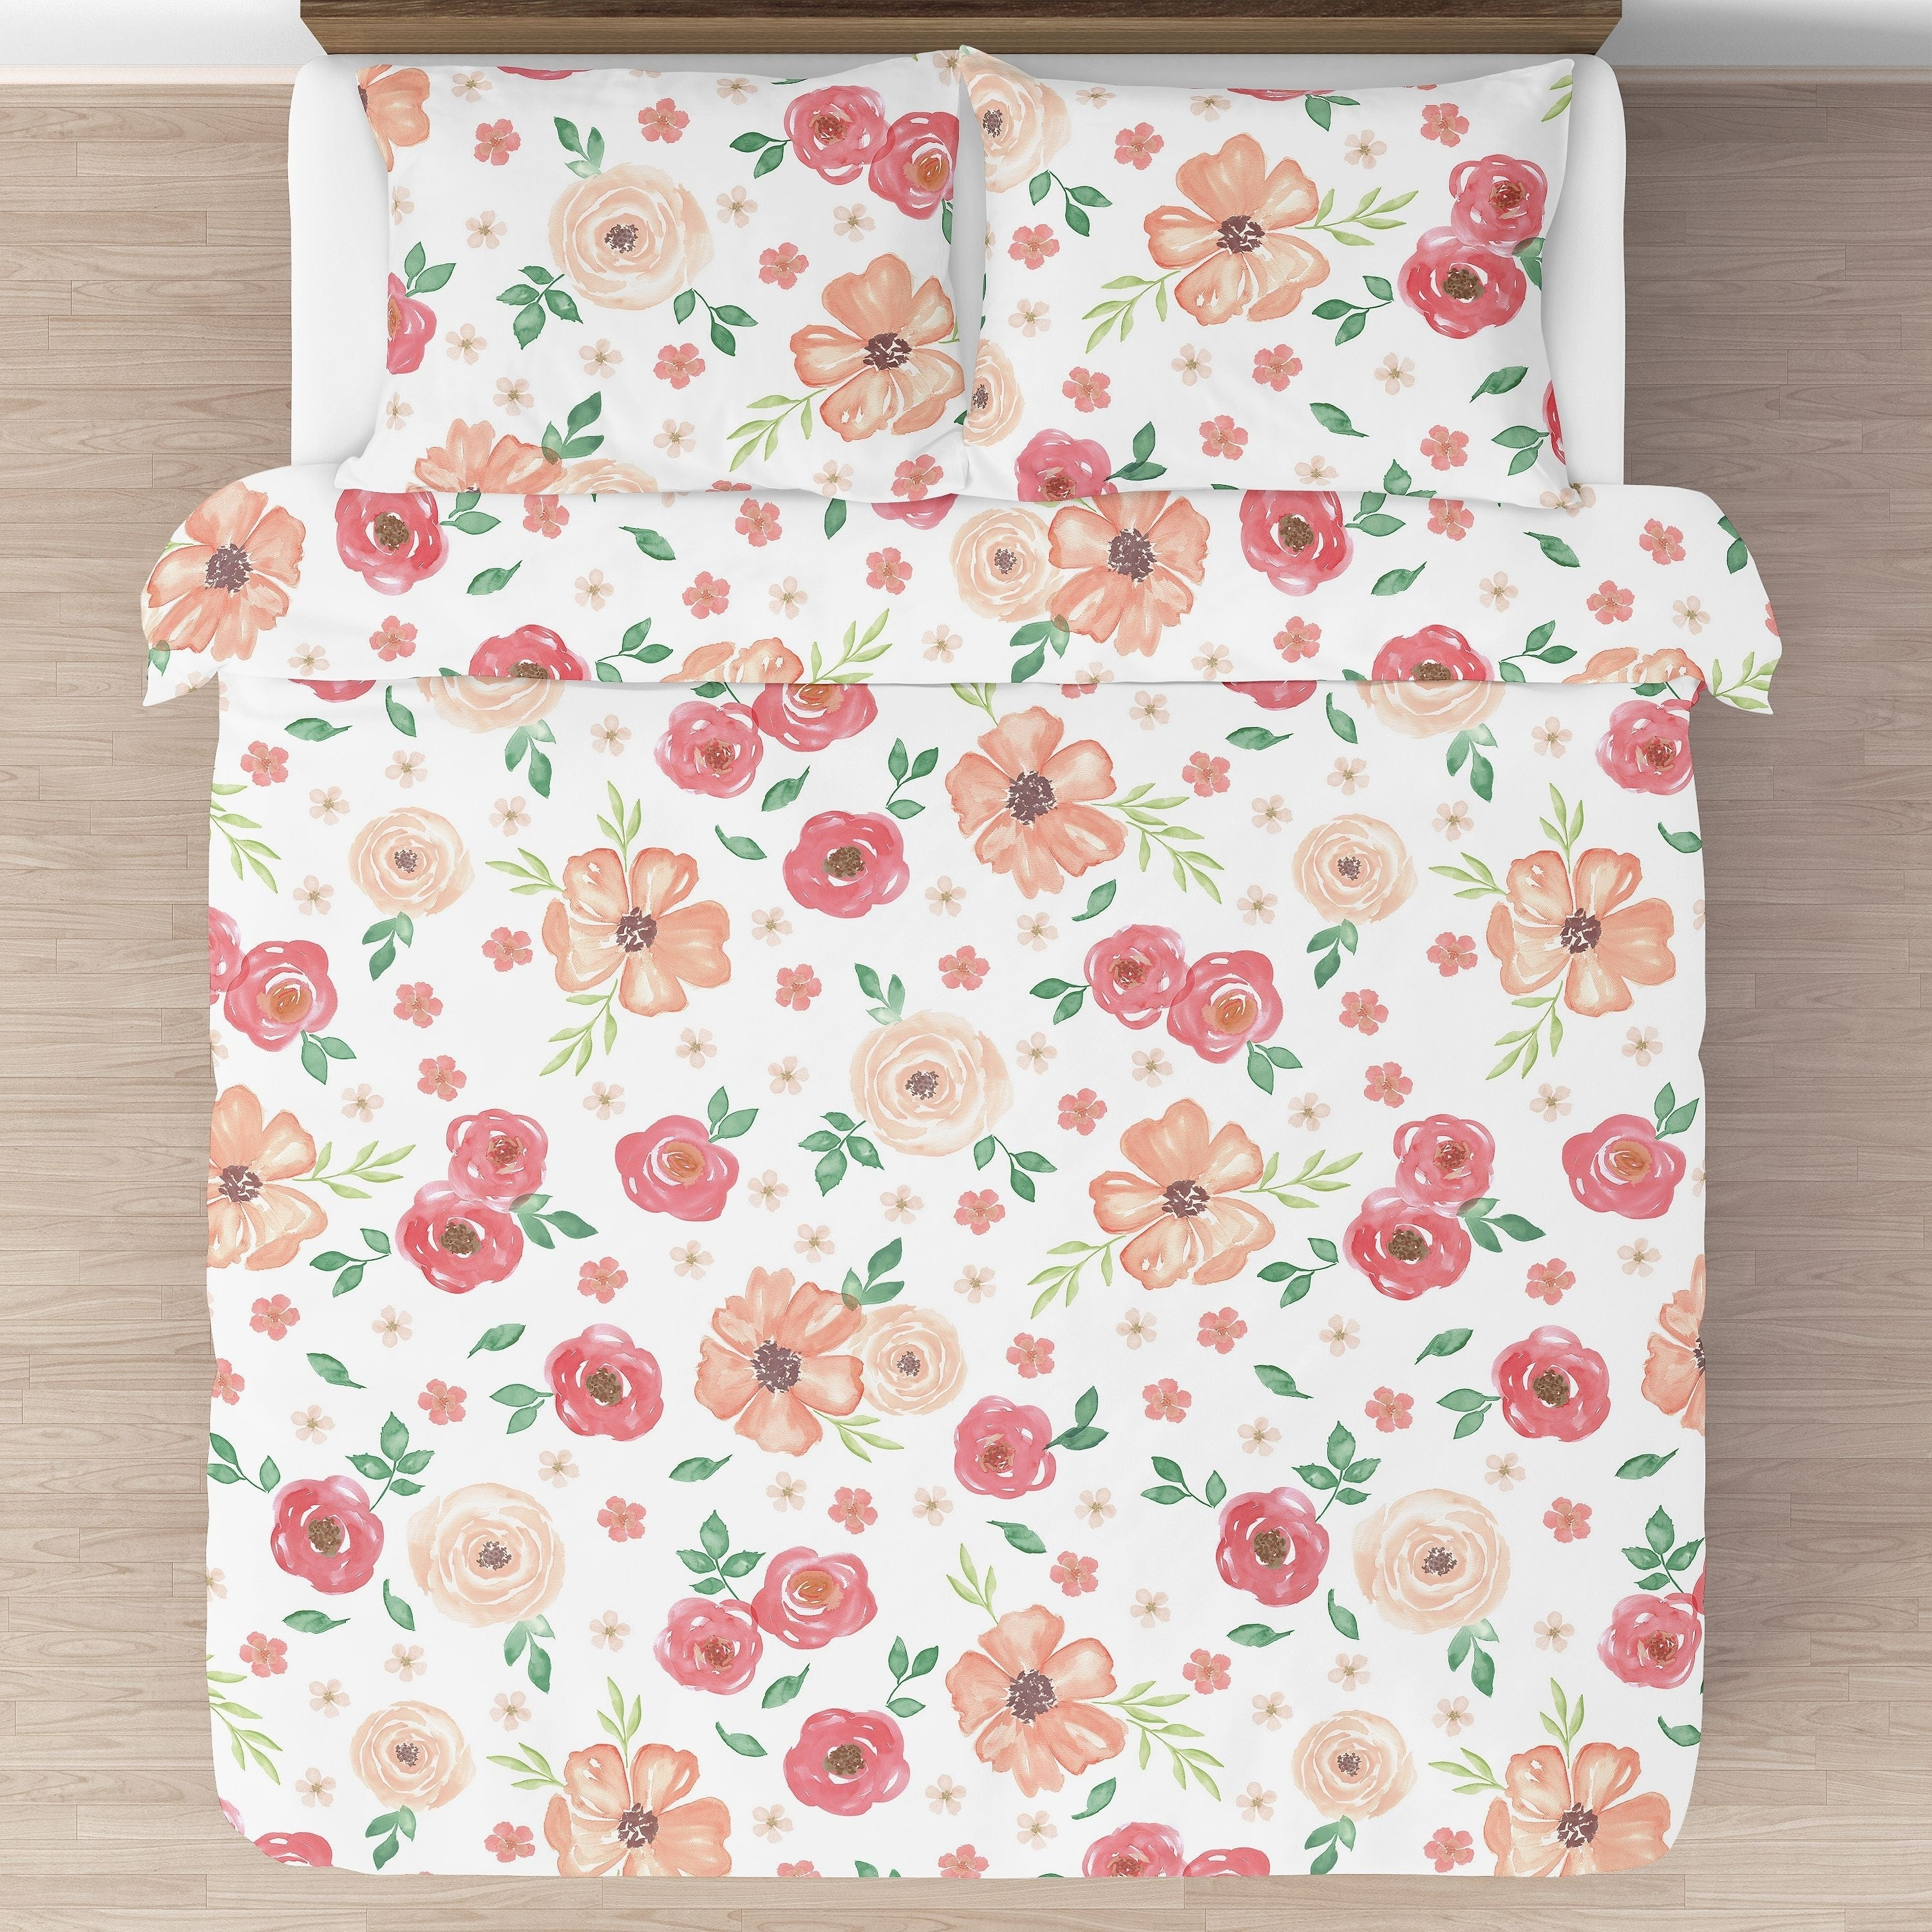 Shop Sweet Jojo Designs Peach And Green Shabby Chic Watercolor Floral Collection Girl 3 Piece Full Queen Size Comforter Set Overstock 22376063